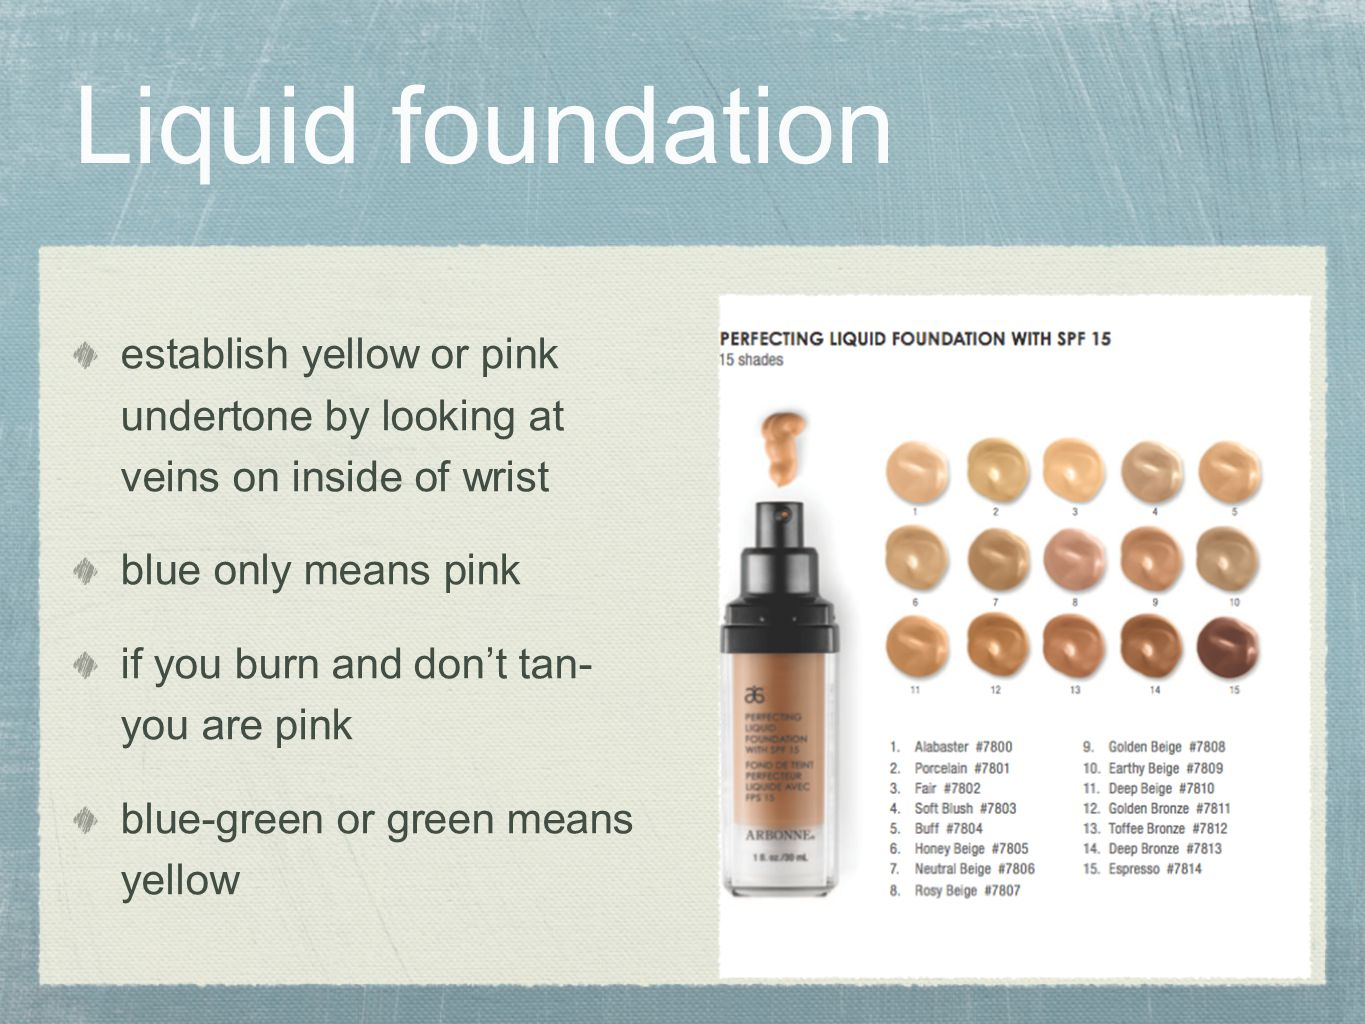 Liquid foundation establish yellow or pink undertone by looking at veins on inside of wrist. blue only means pink.